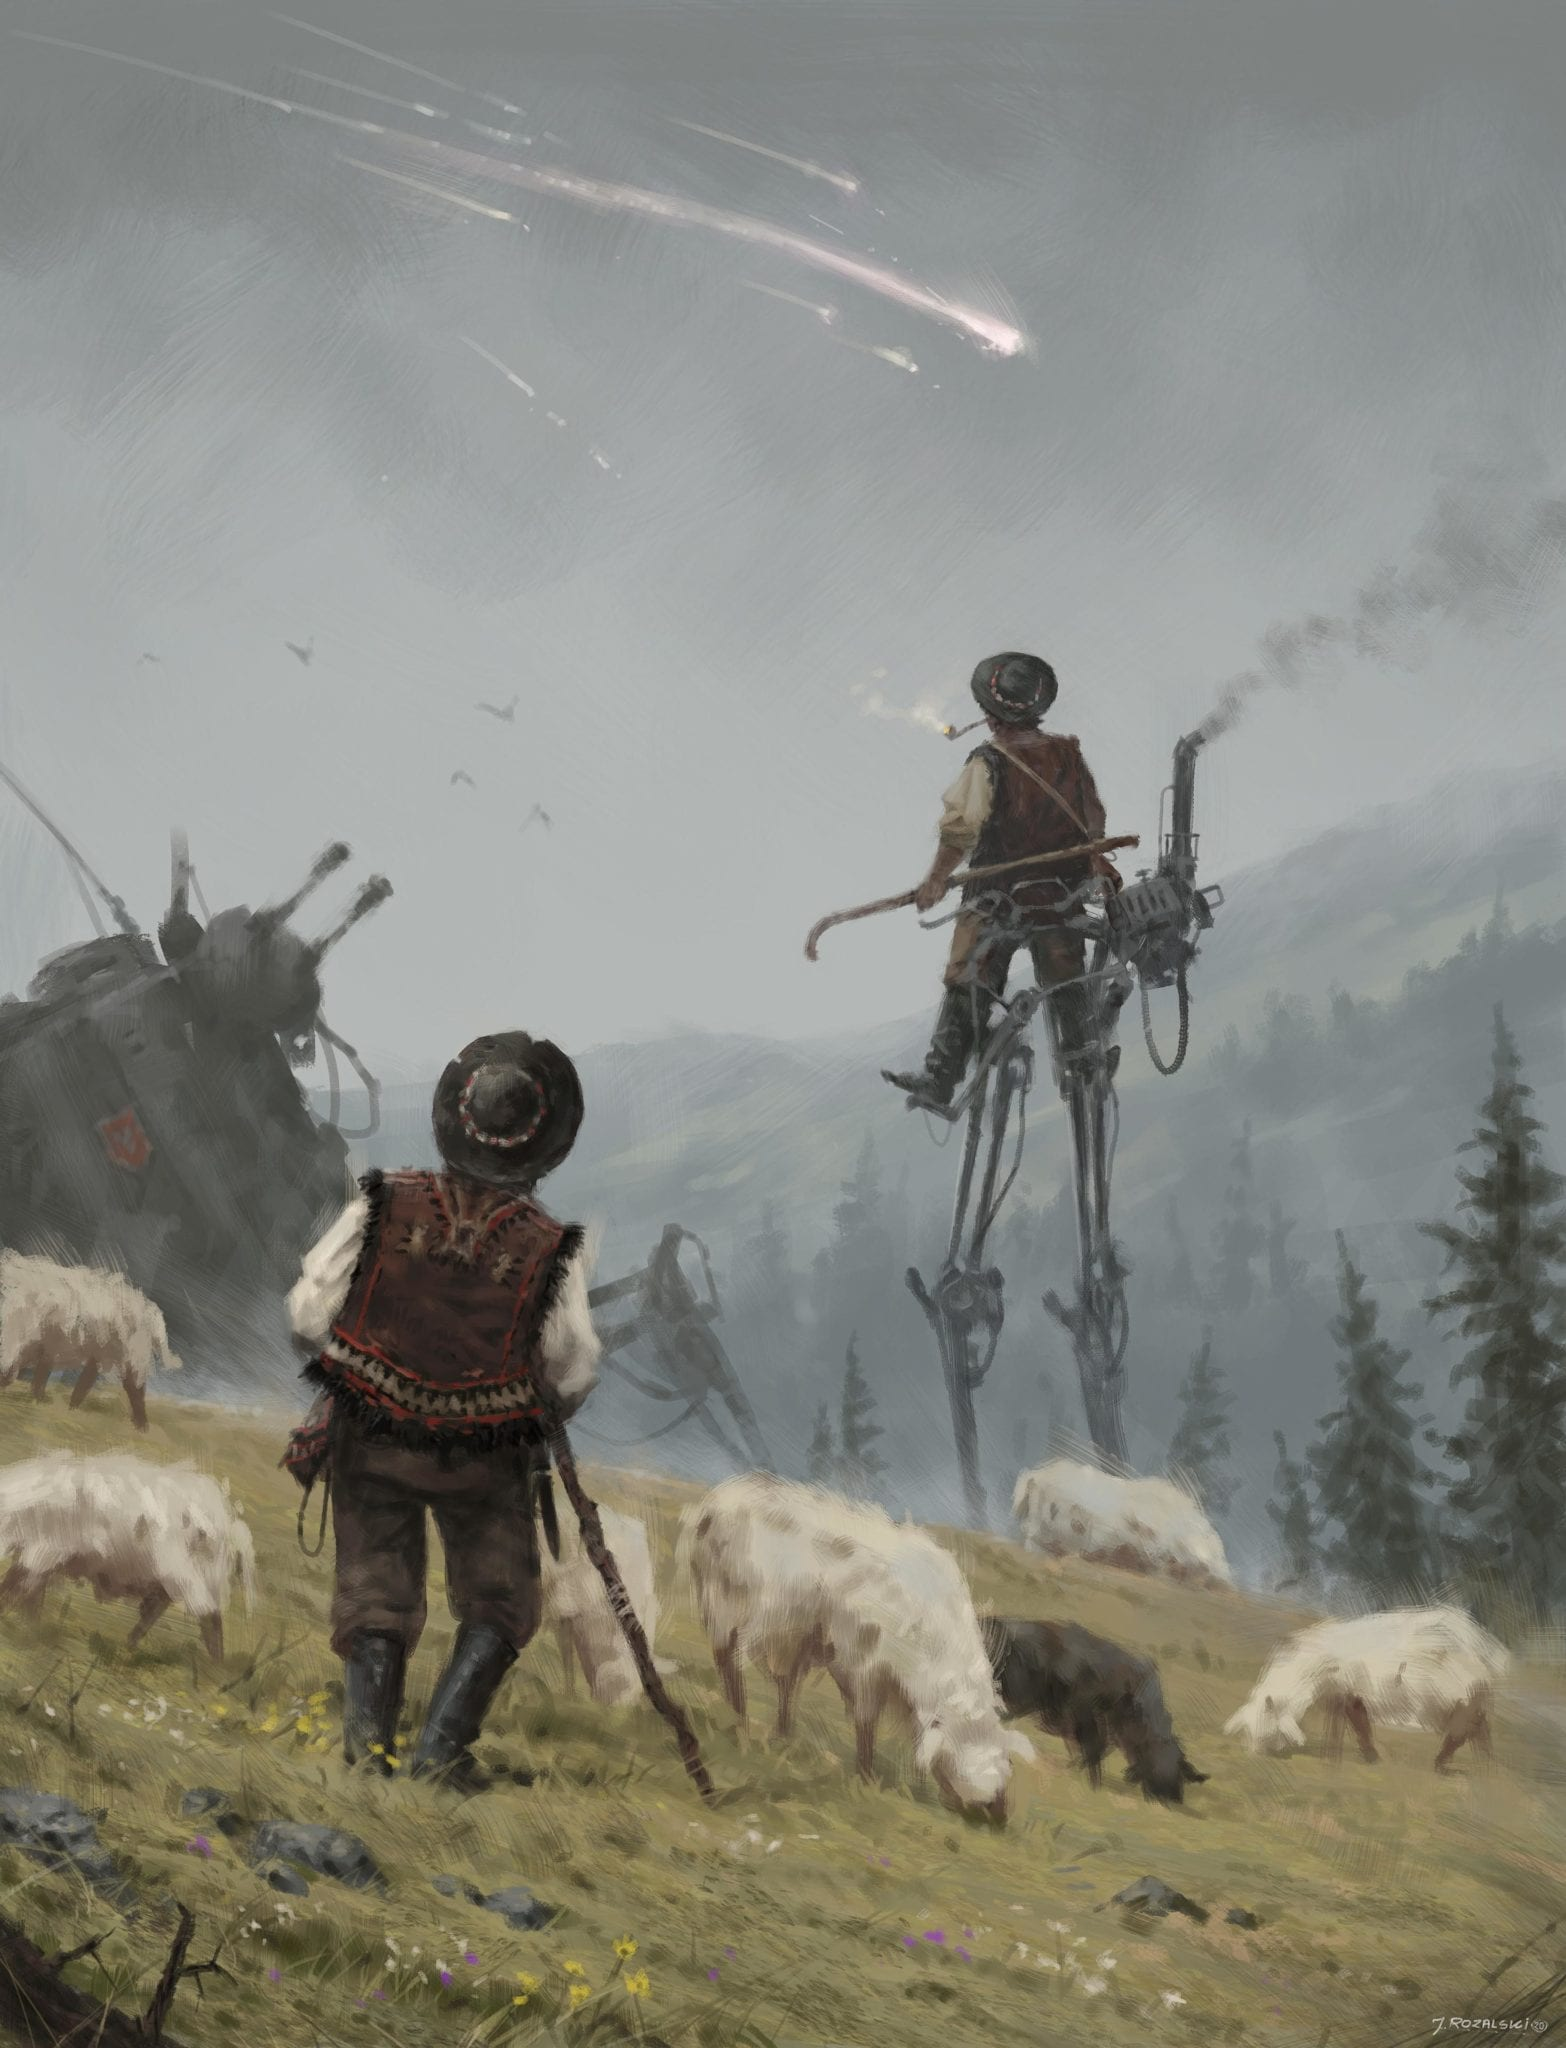 1920 - the end of the known world, Jakub Rozalski